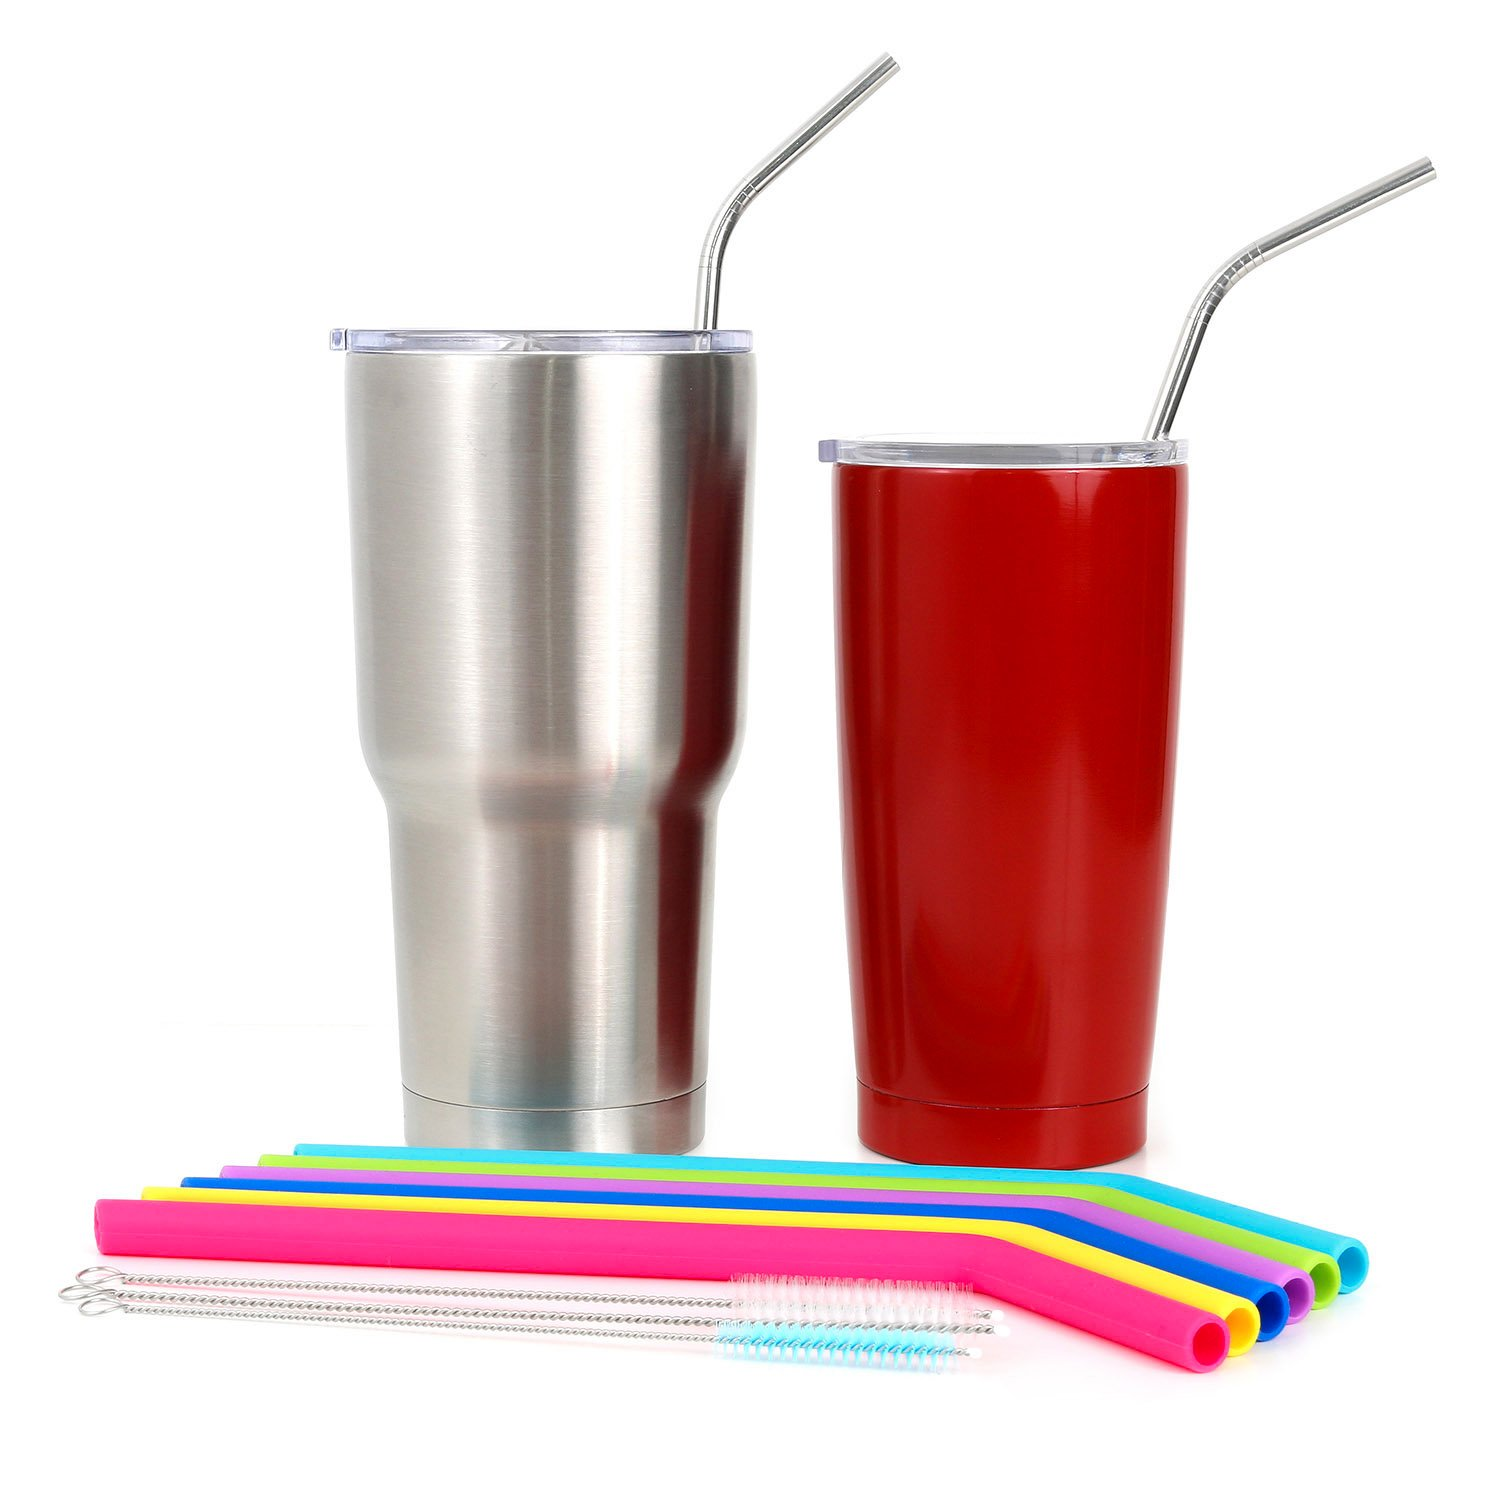 Big Silicone Straws for 30 oz Tumbler Yeti/Rtic Complete Bundle - Reusable Silicone Straws Set of 6 - Stainless Steel Straws Extra Long - Brushes and Storage Pouch Included by Kitchen Up (Image #6)